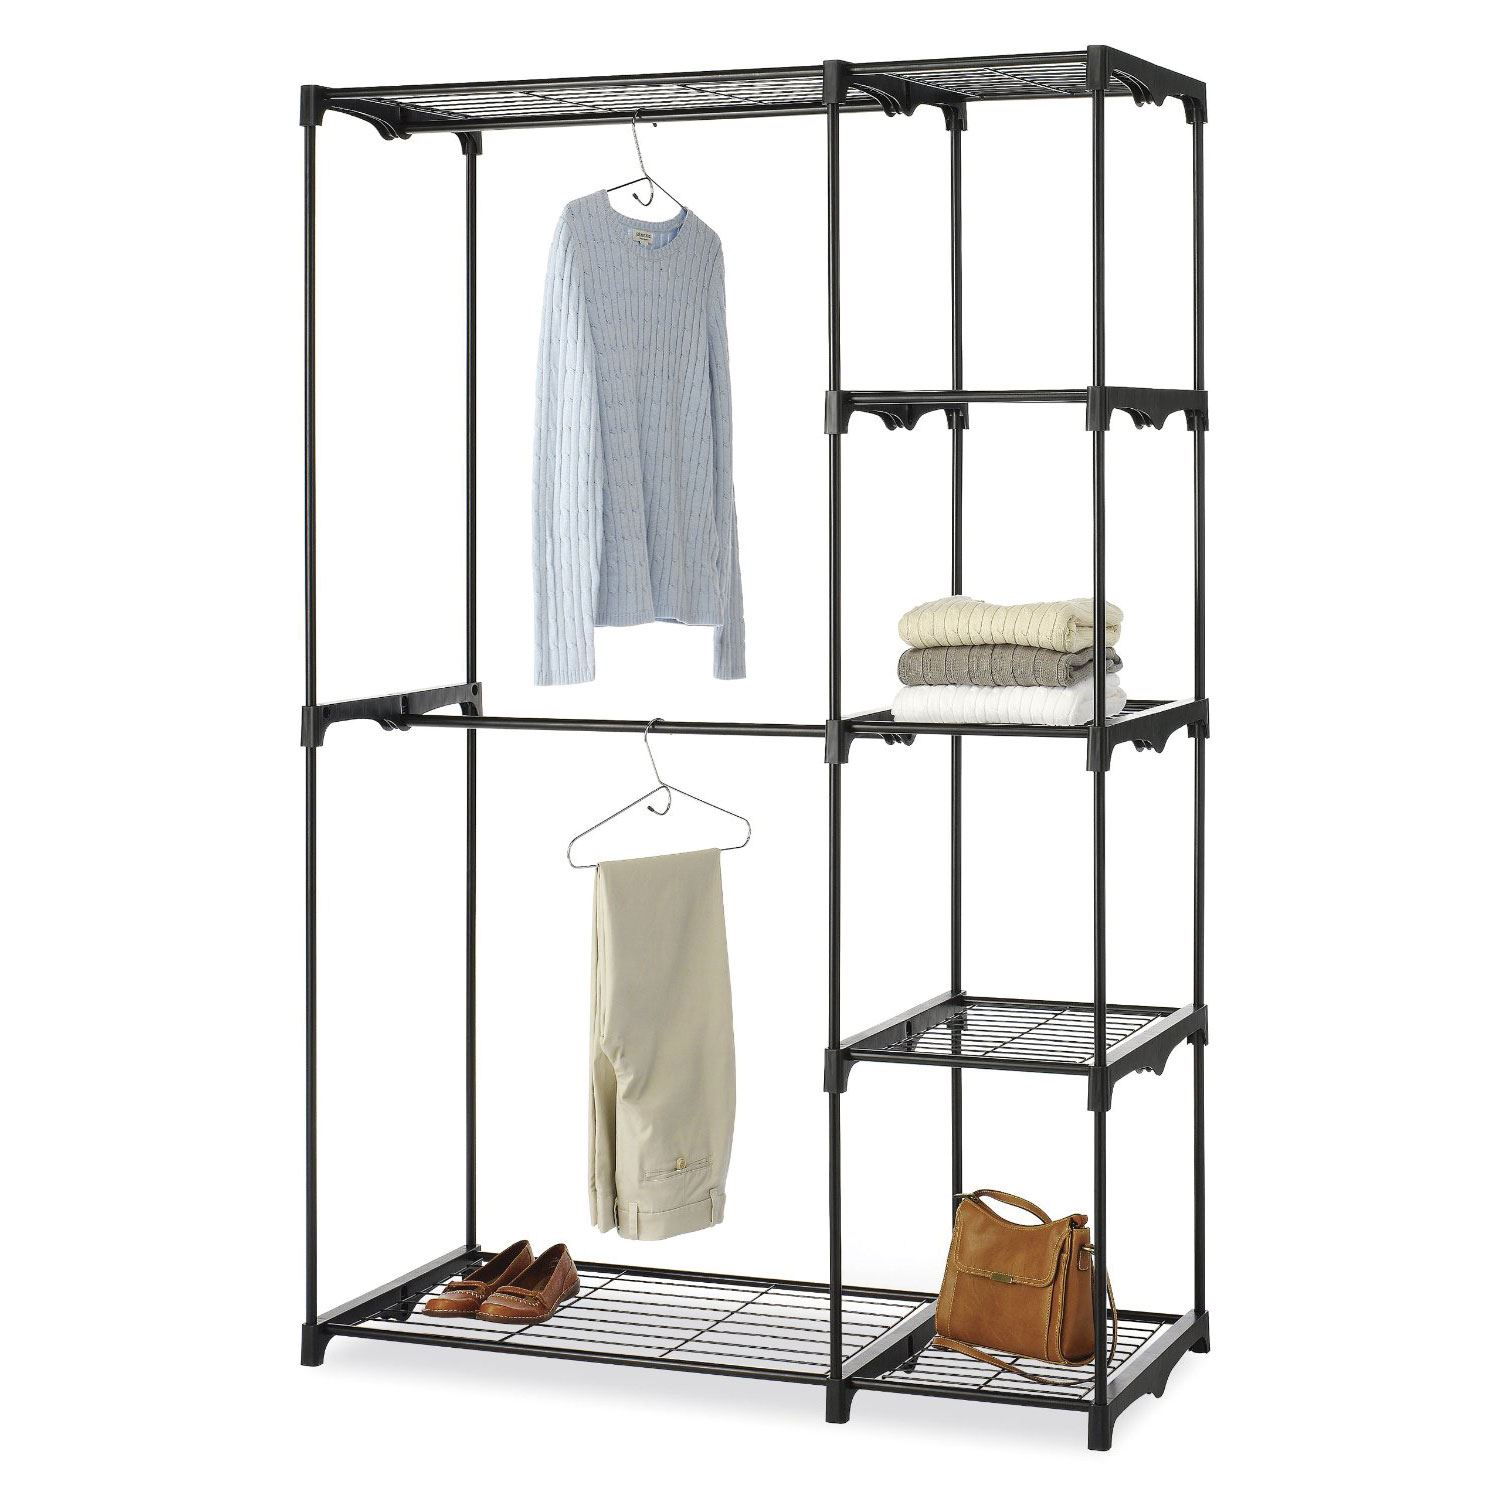 free standing portable 5 shelves closet storage organizer wardrobe clothes rack ebay. Black Bedroom Furniture Sets. Home Design Ideas